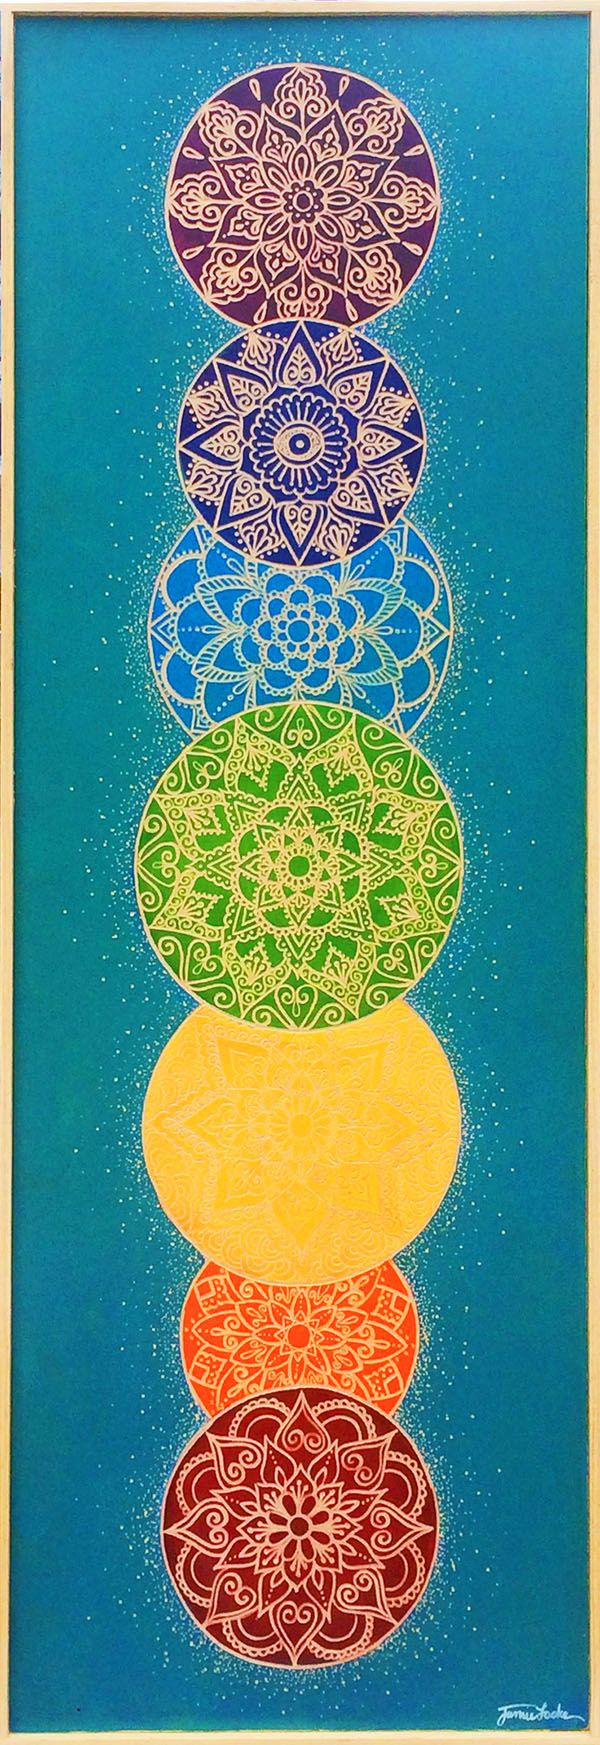 "Chakra Mandala, 16"" x 47"" commissioned by Peace Through Yoga, Danville, IN. Jamie Locke - www.jamielockeart.com"